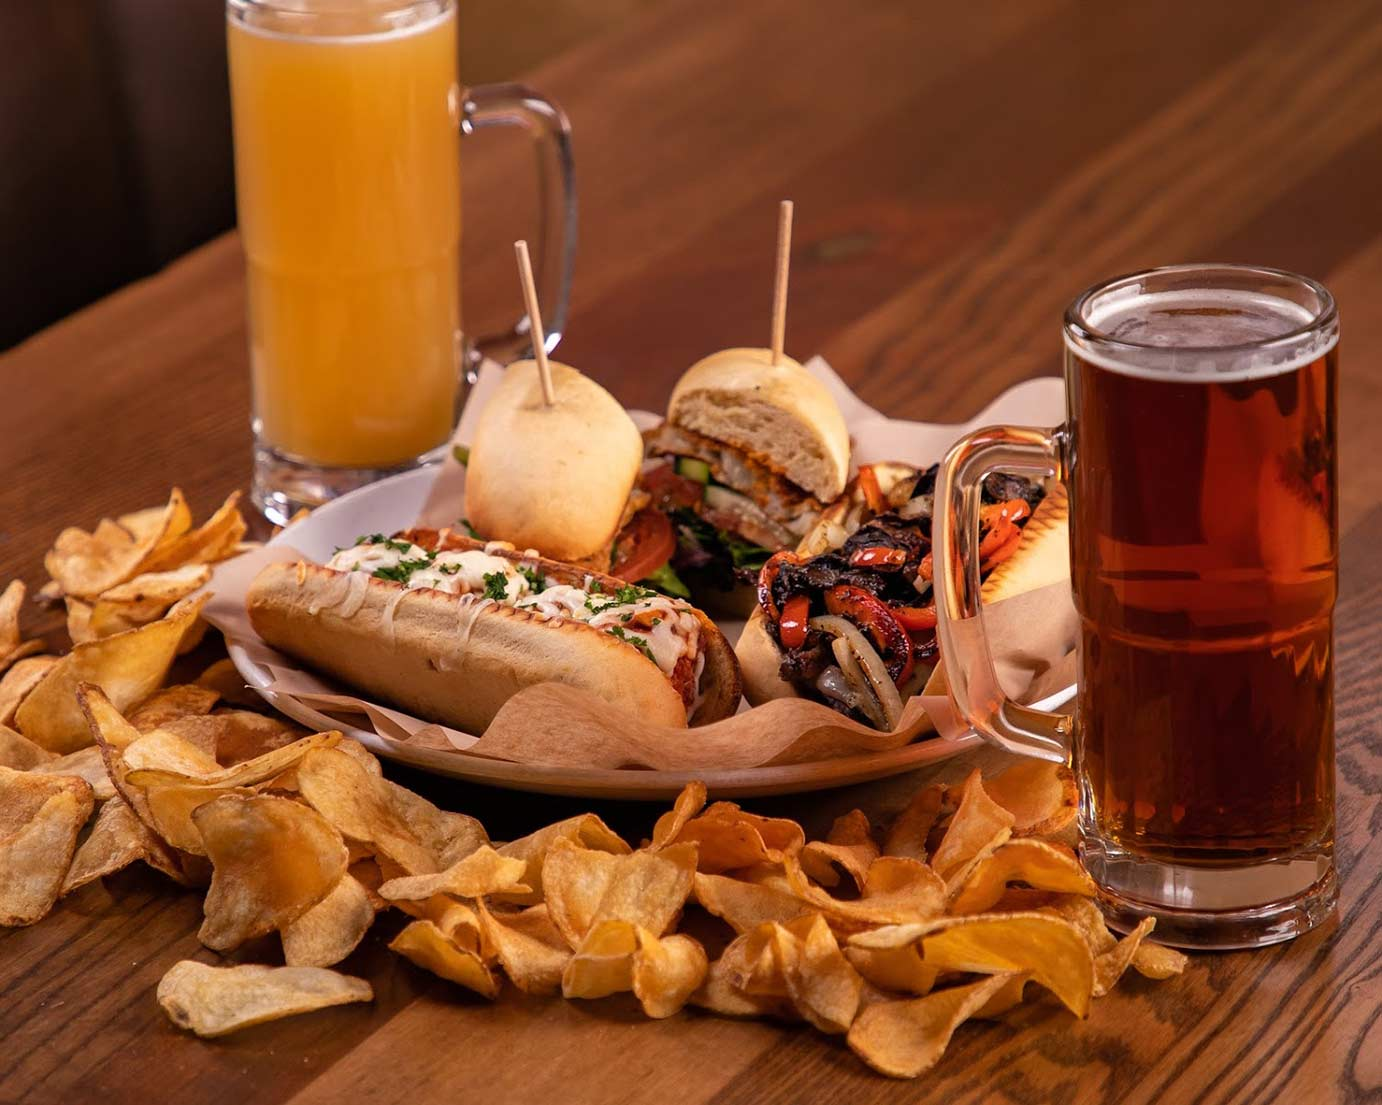 Four sandwiches and two mugs of beer, potato chips around a plate